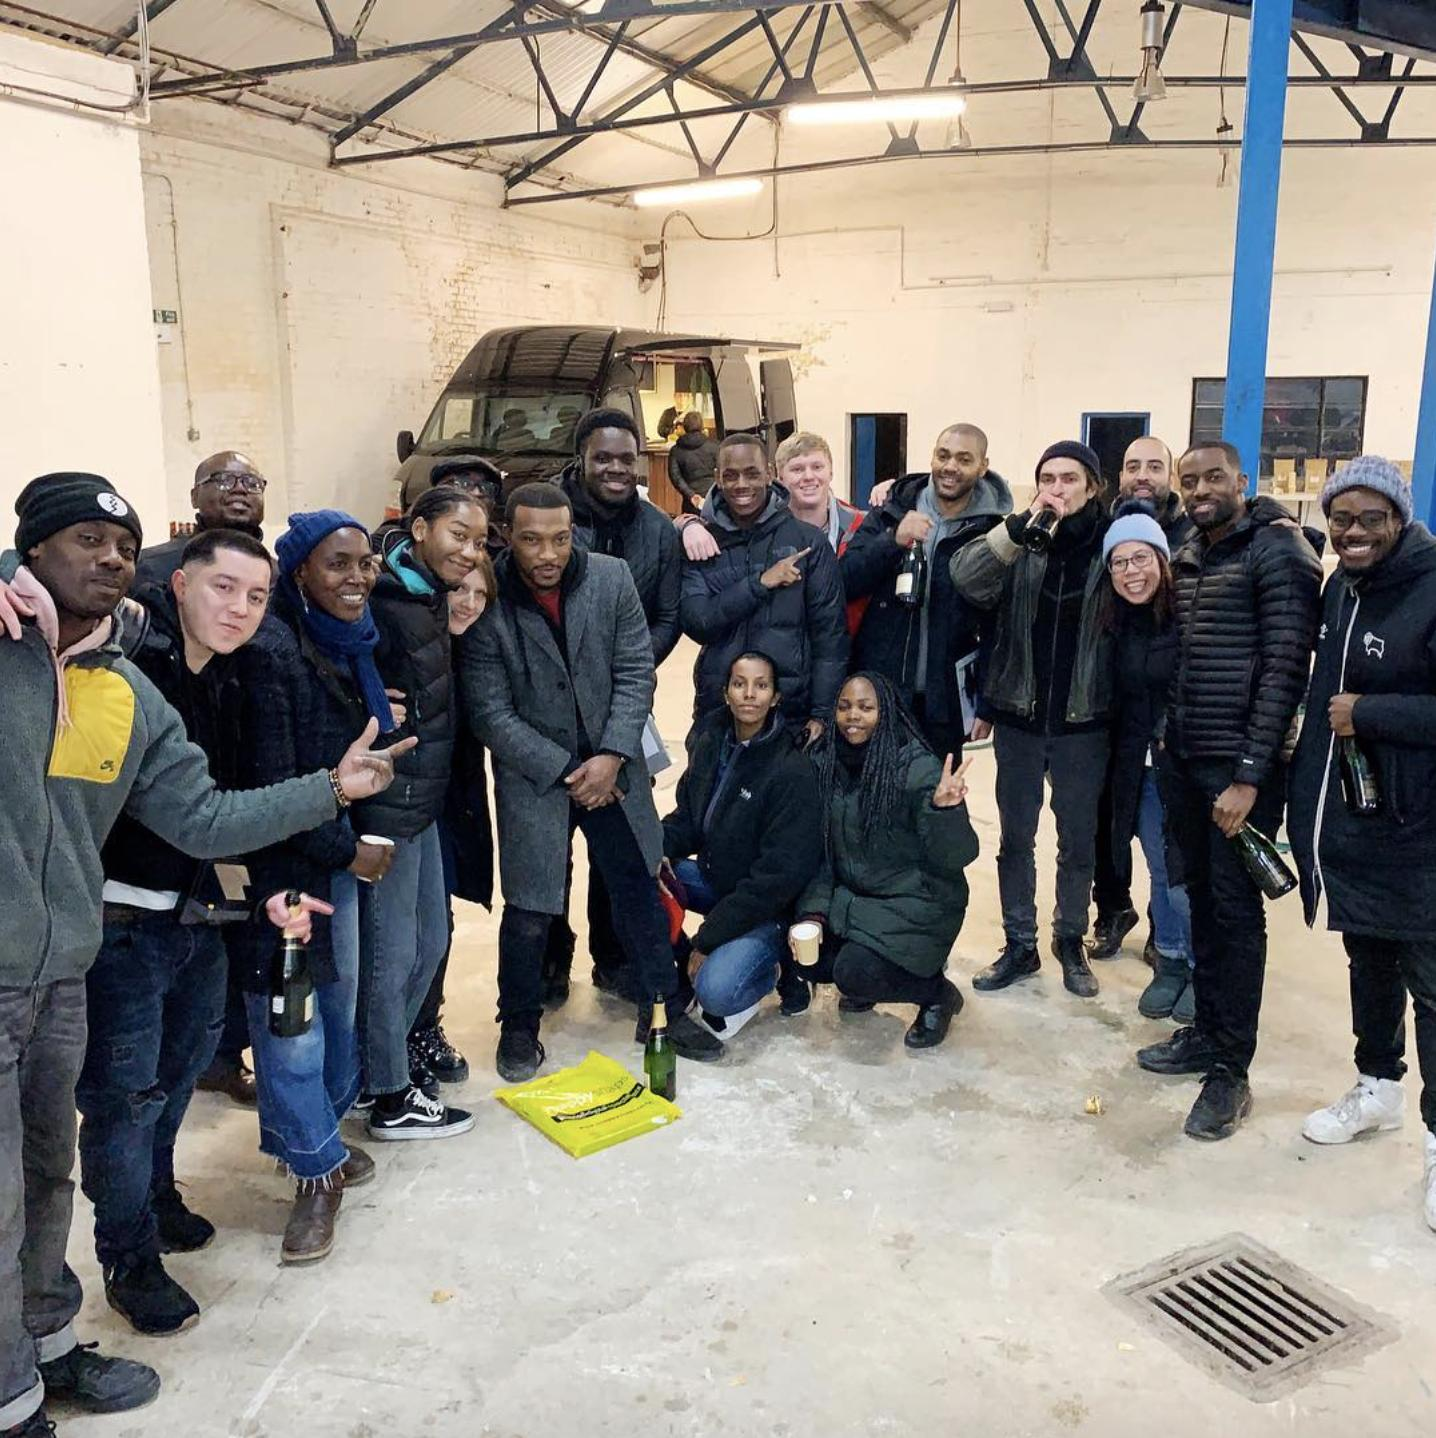 Kano and the cast and crew of Top Boy season 3.